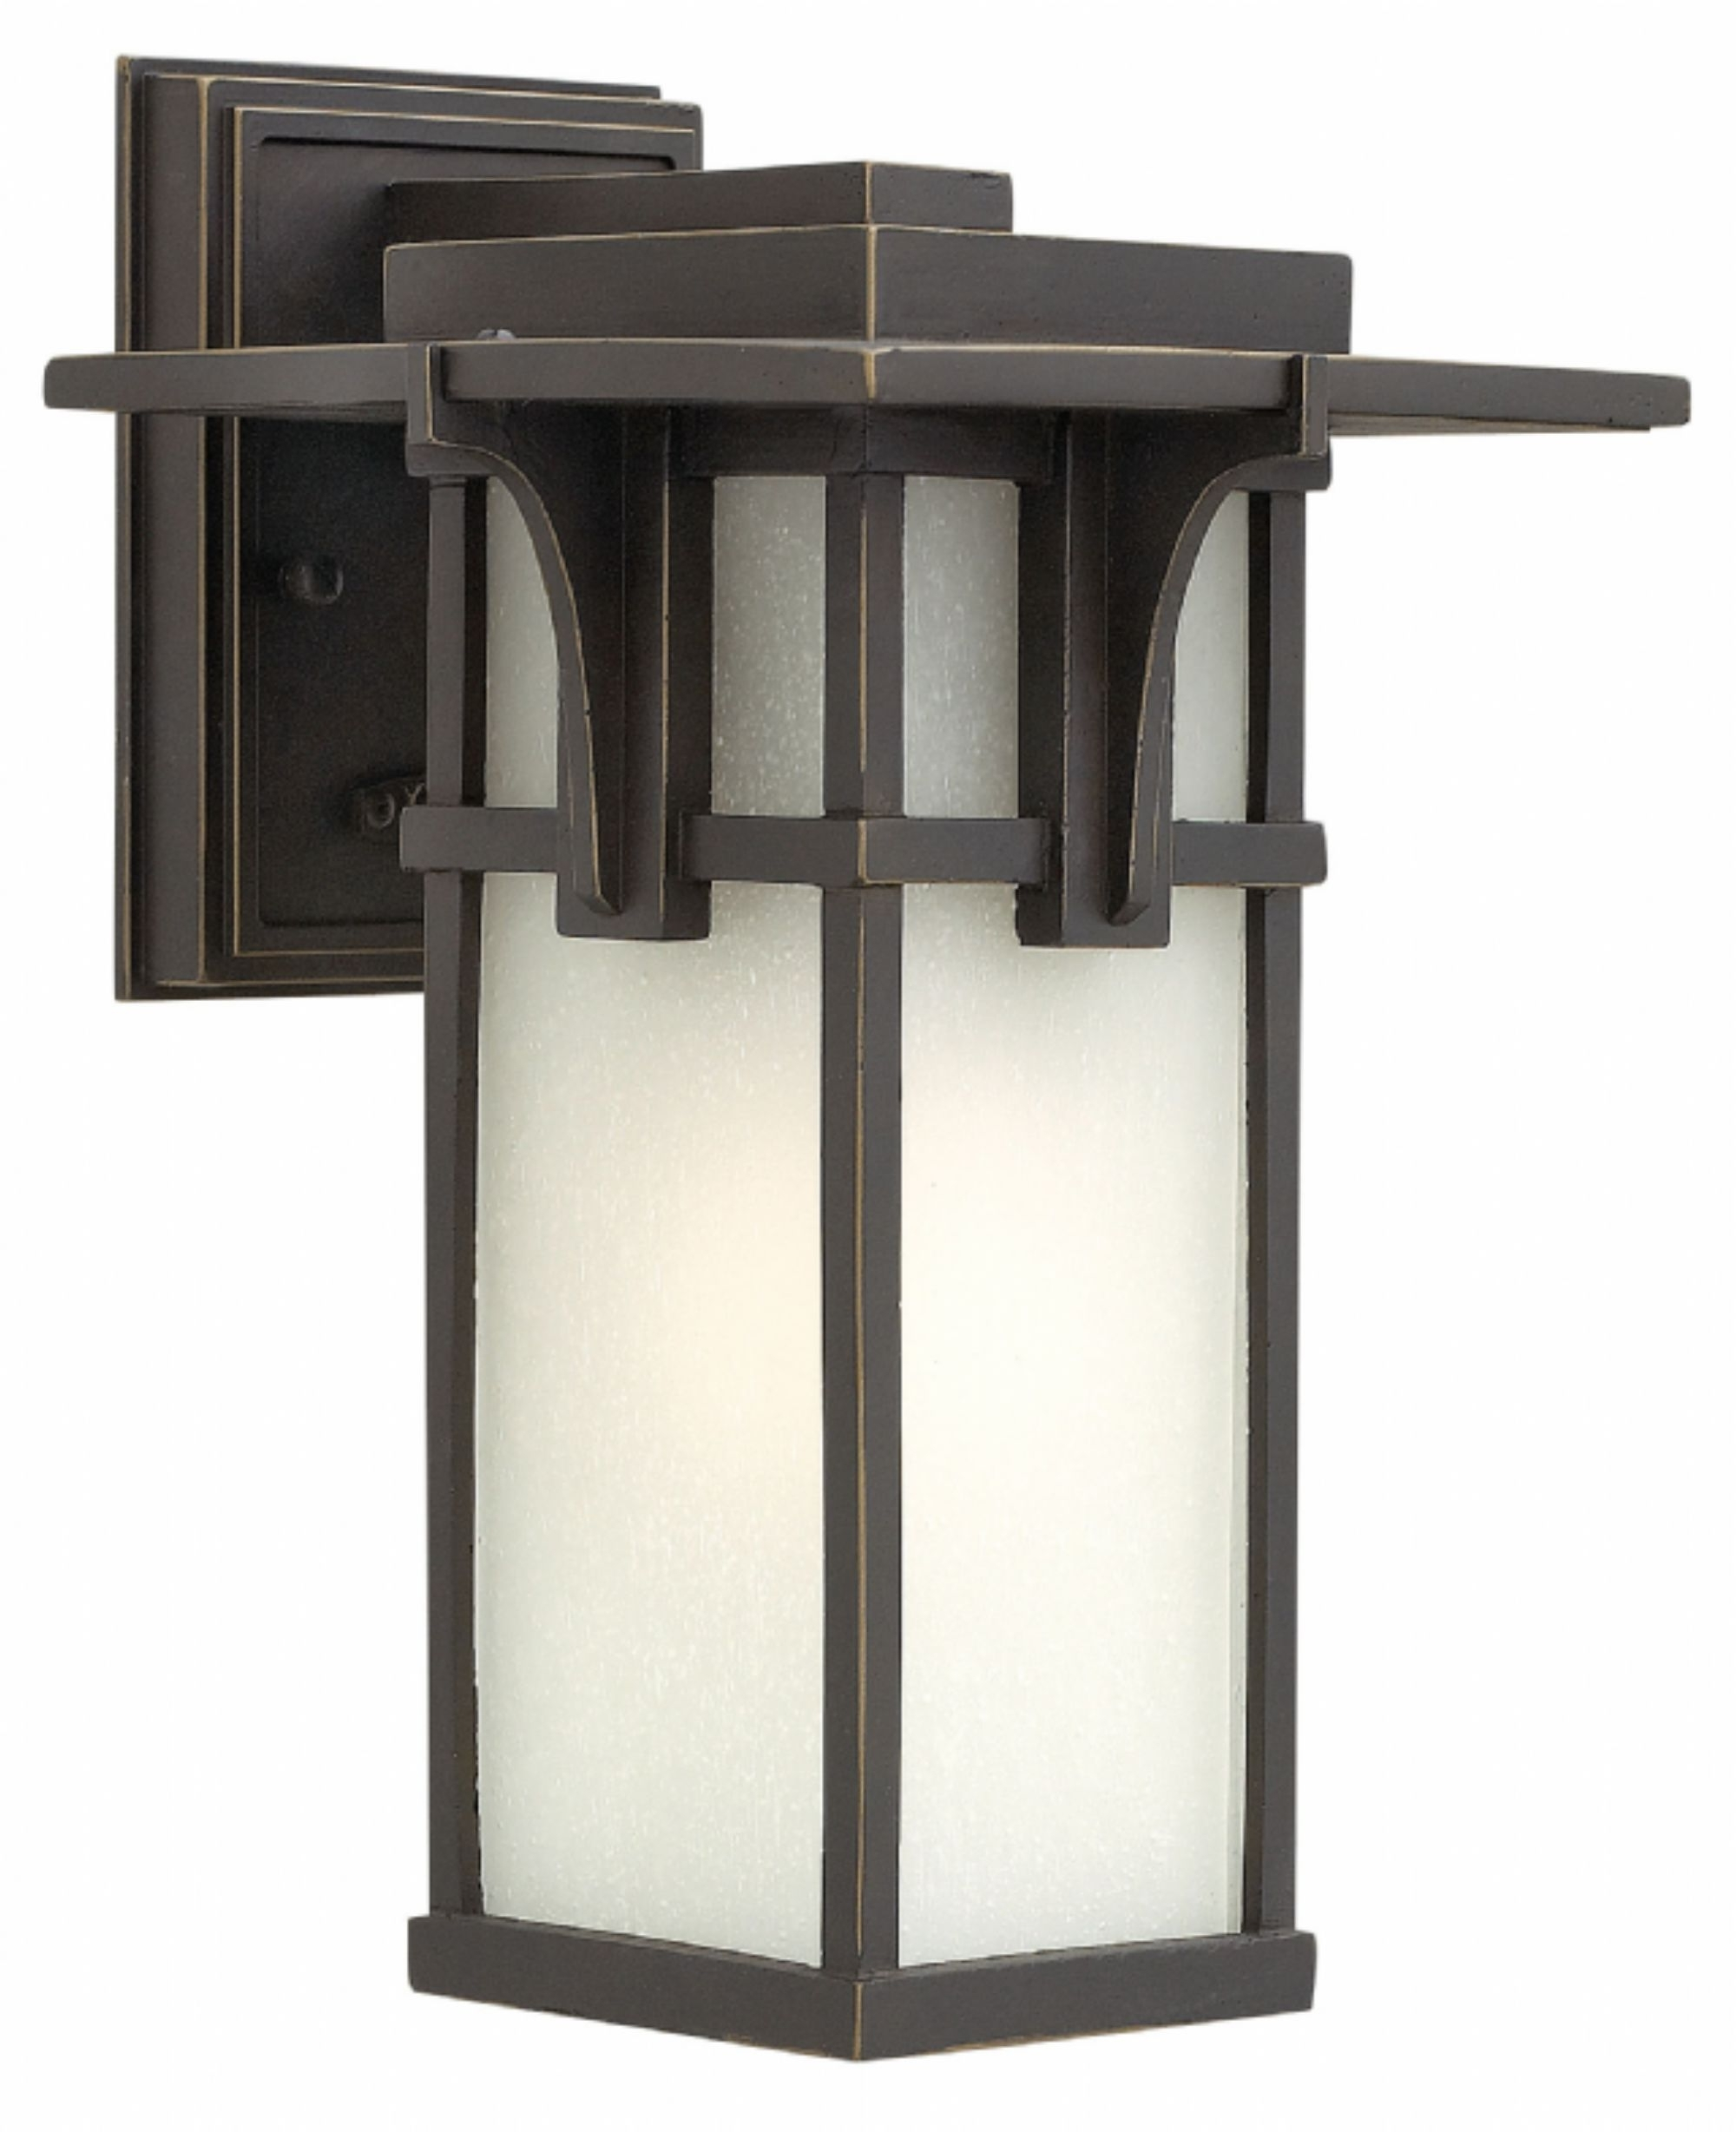 Oil Rubbed Bronze Manhattan > Exterior Wall Mount In Trendy Large Wall Mount Hinkley Lighting (View 8 of 20)